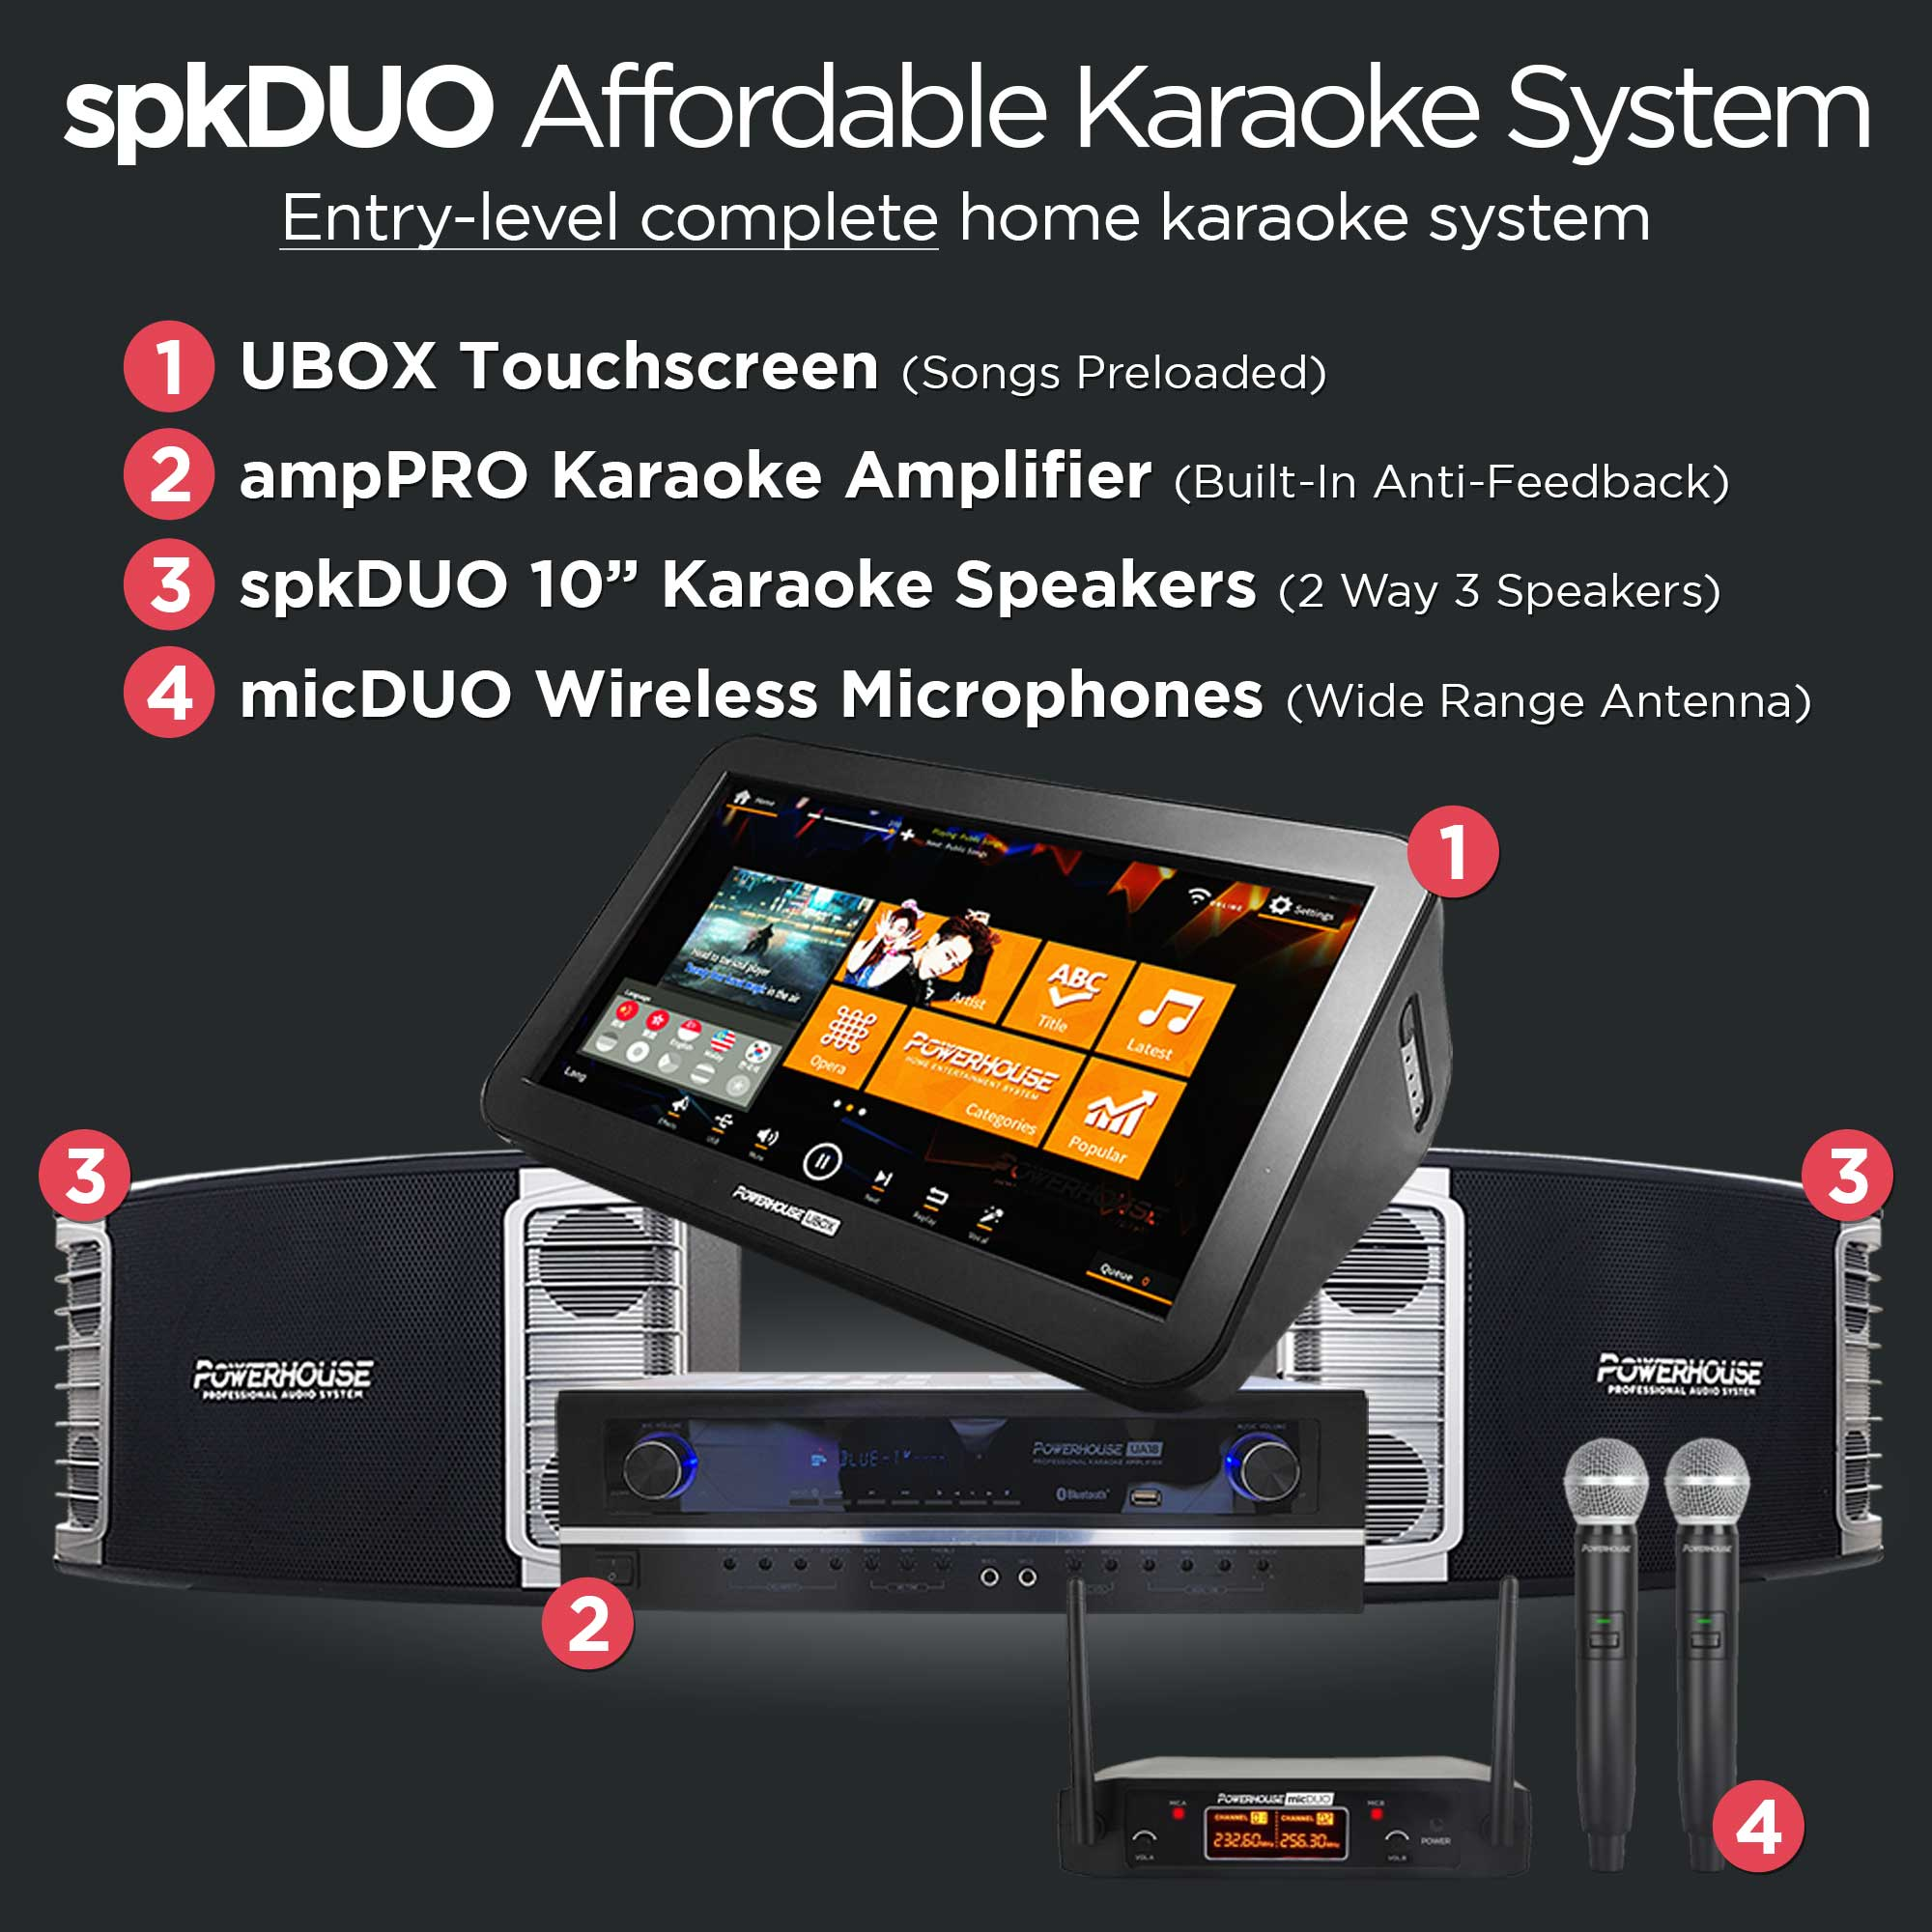 Powerhouse spkDUO Affordable Karaoke System